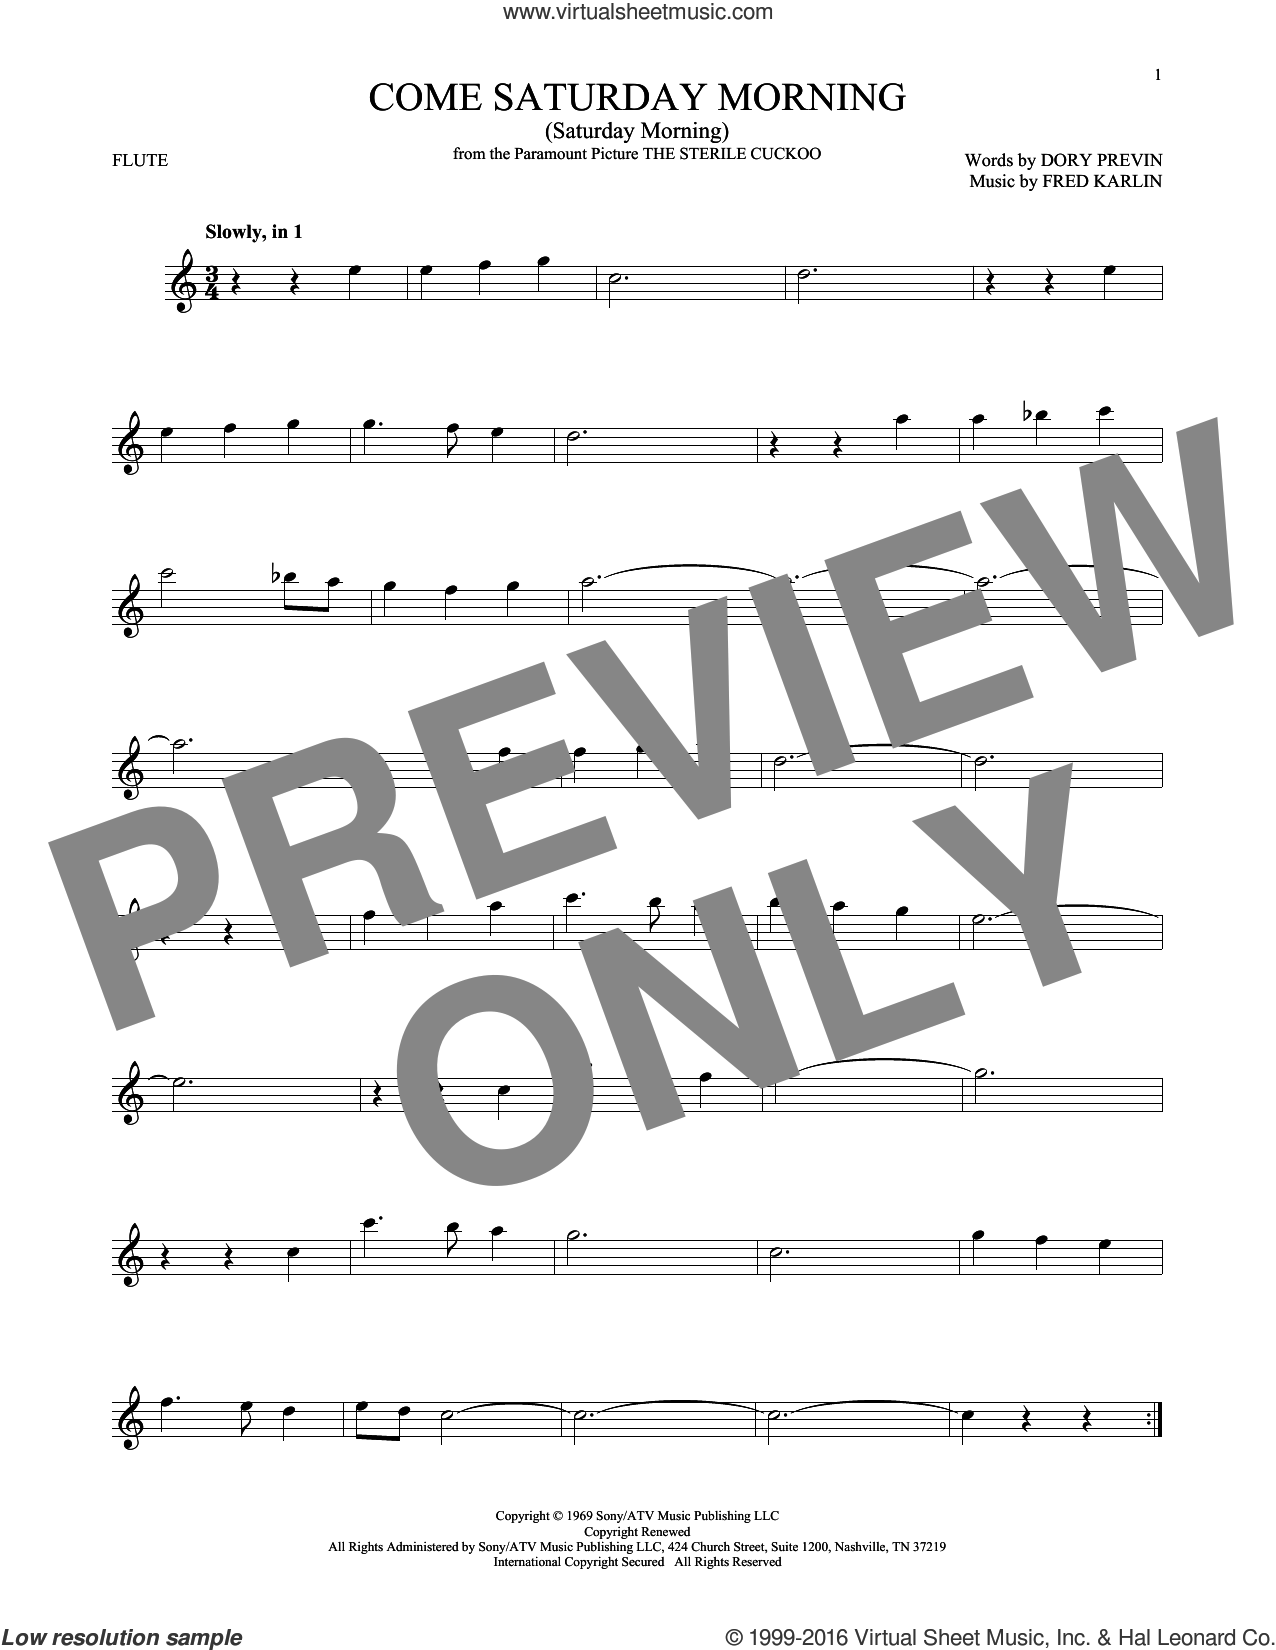 Come Saturday Morning (Saturday Morning) sheet music for flute solo by Dory Previn. Score Image Preview.